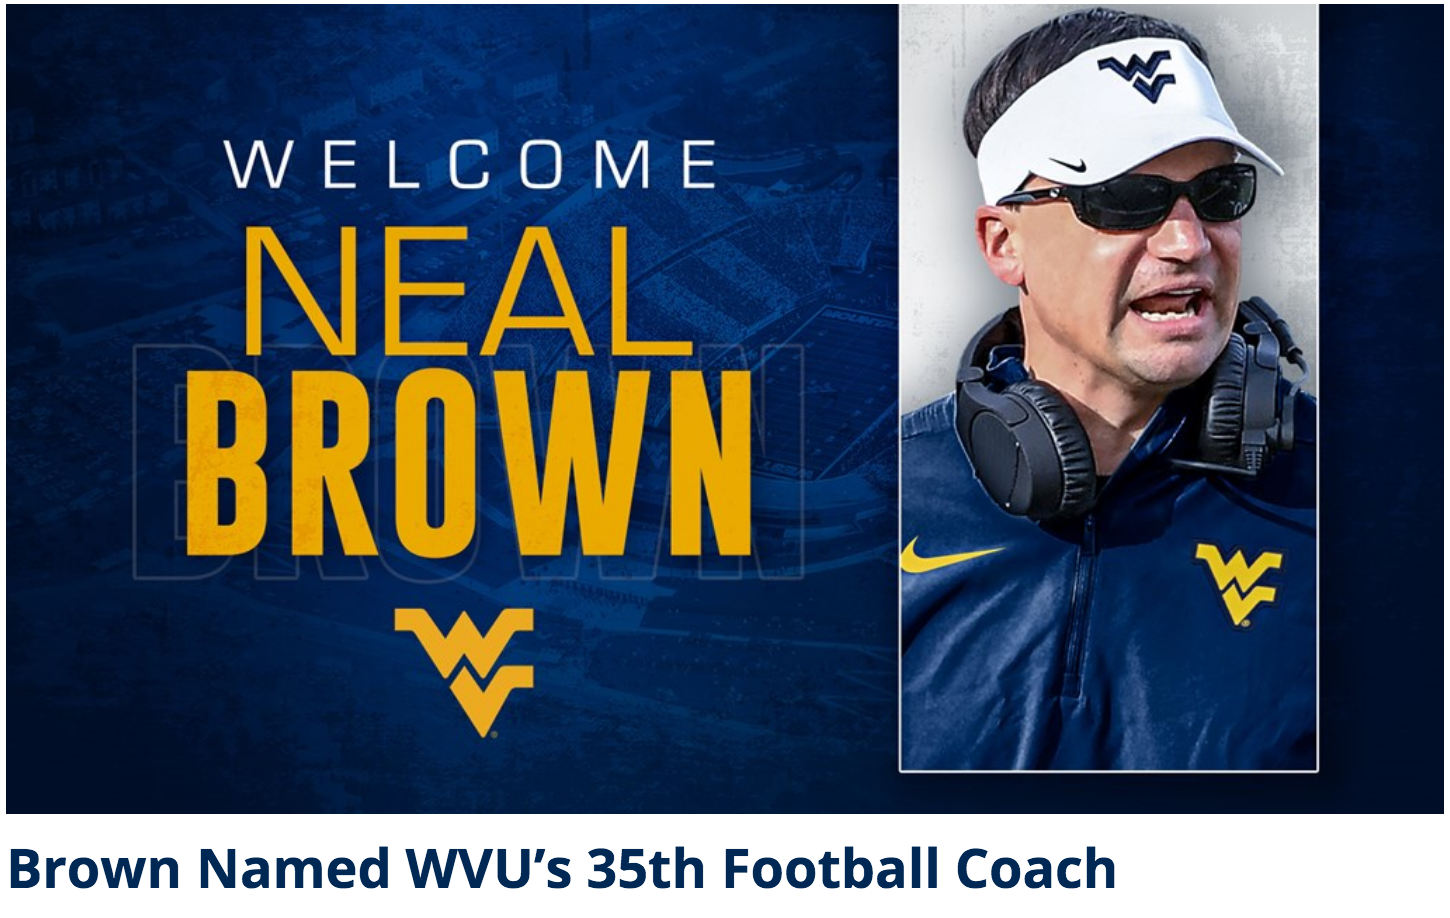 Welcome Neal Brown to WVU-794306114